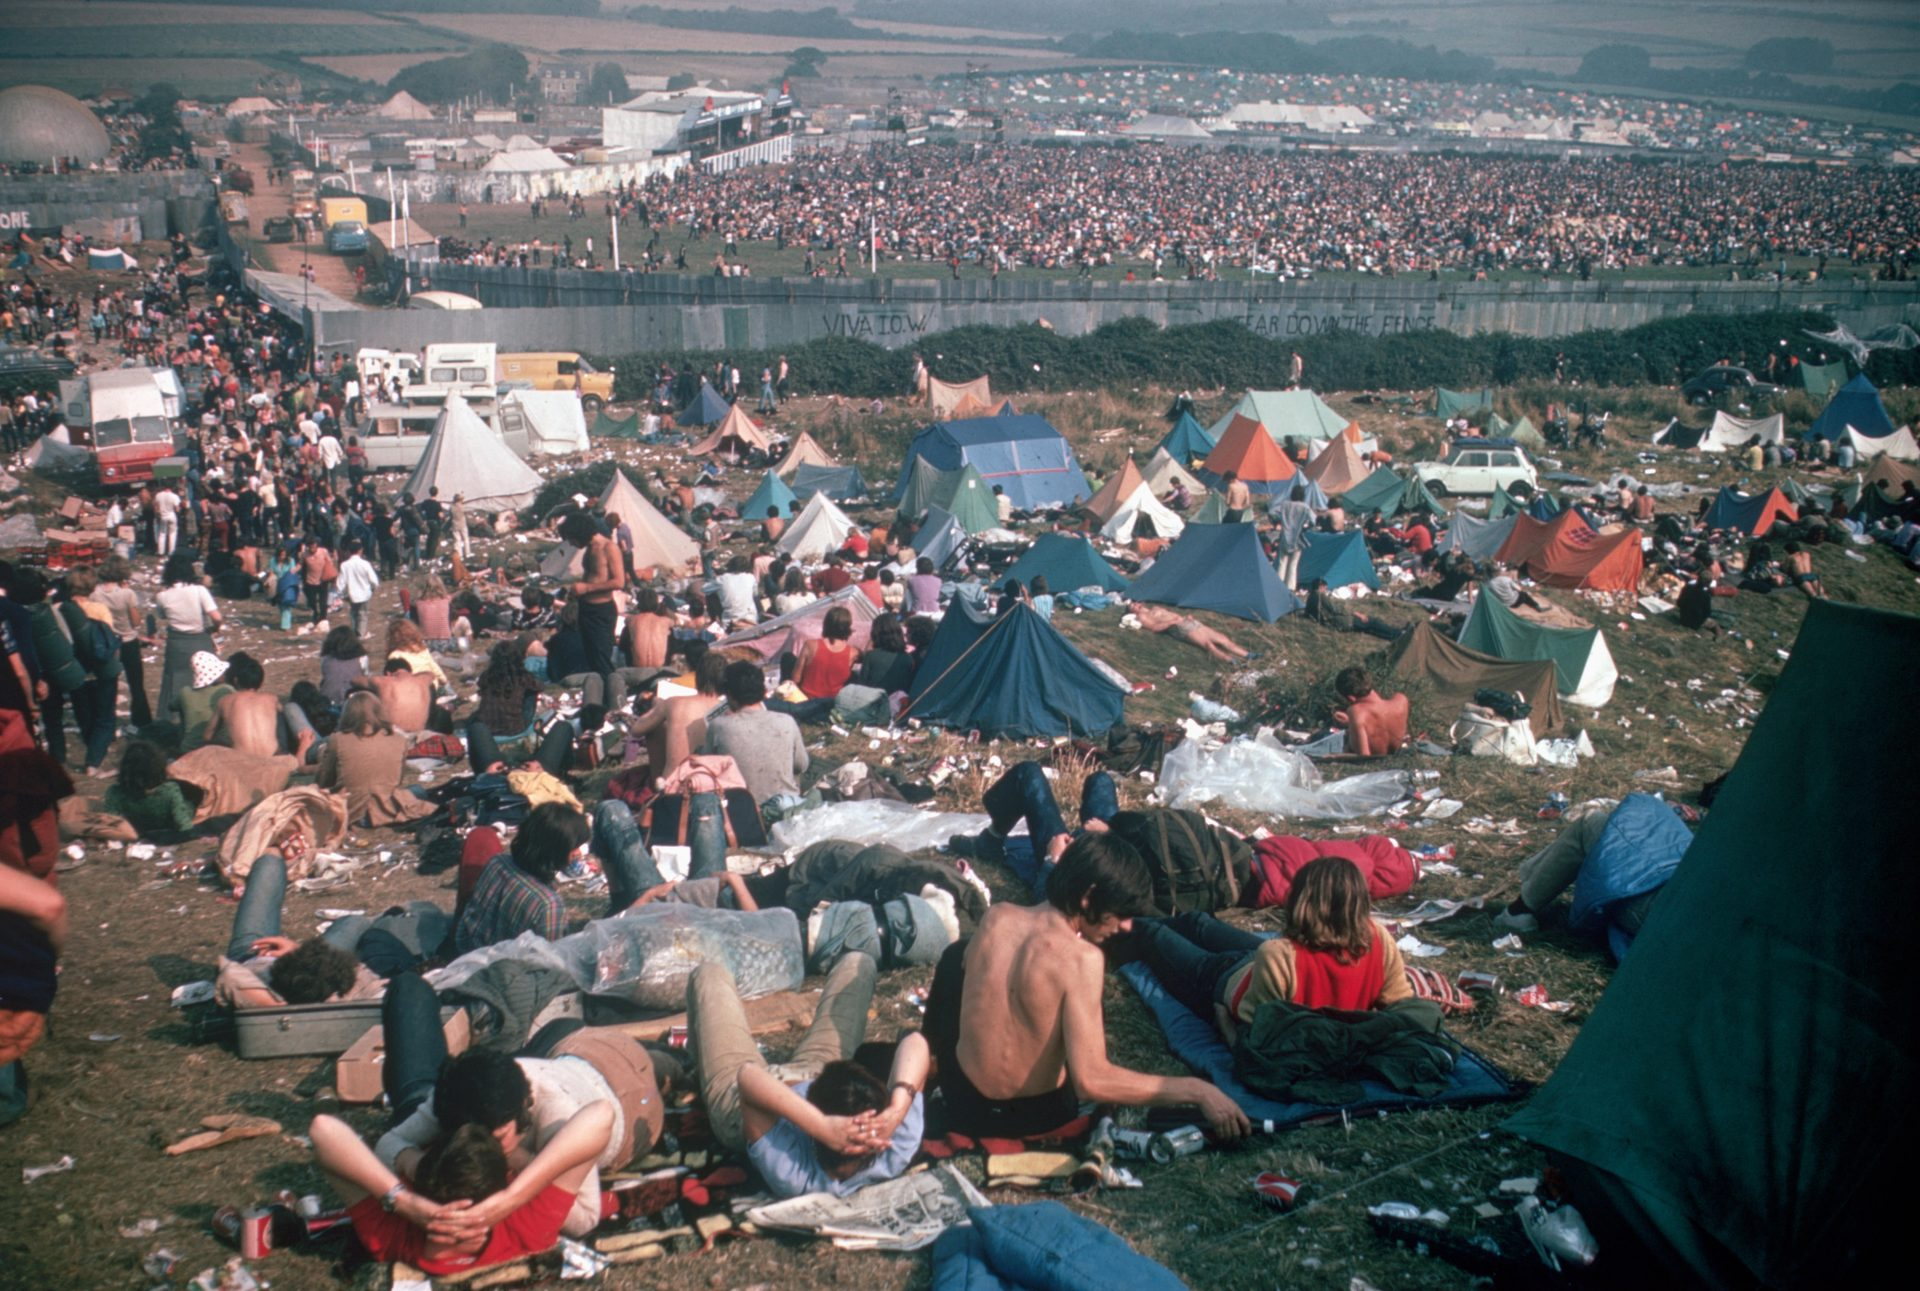 Festivalgoers on a hillside look down on the jammed stage area behind fences during the 1970 Isle of Wight Festival. Credit: Bettmann Archive